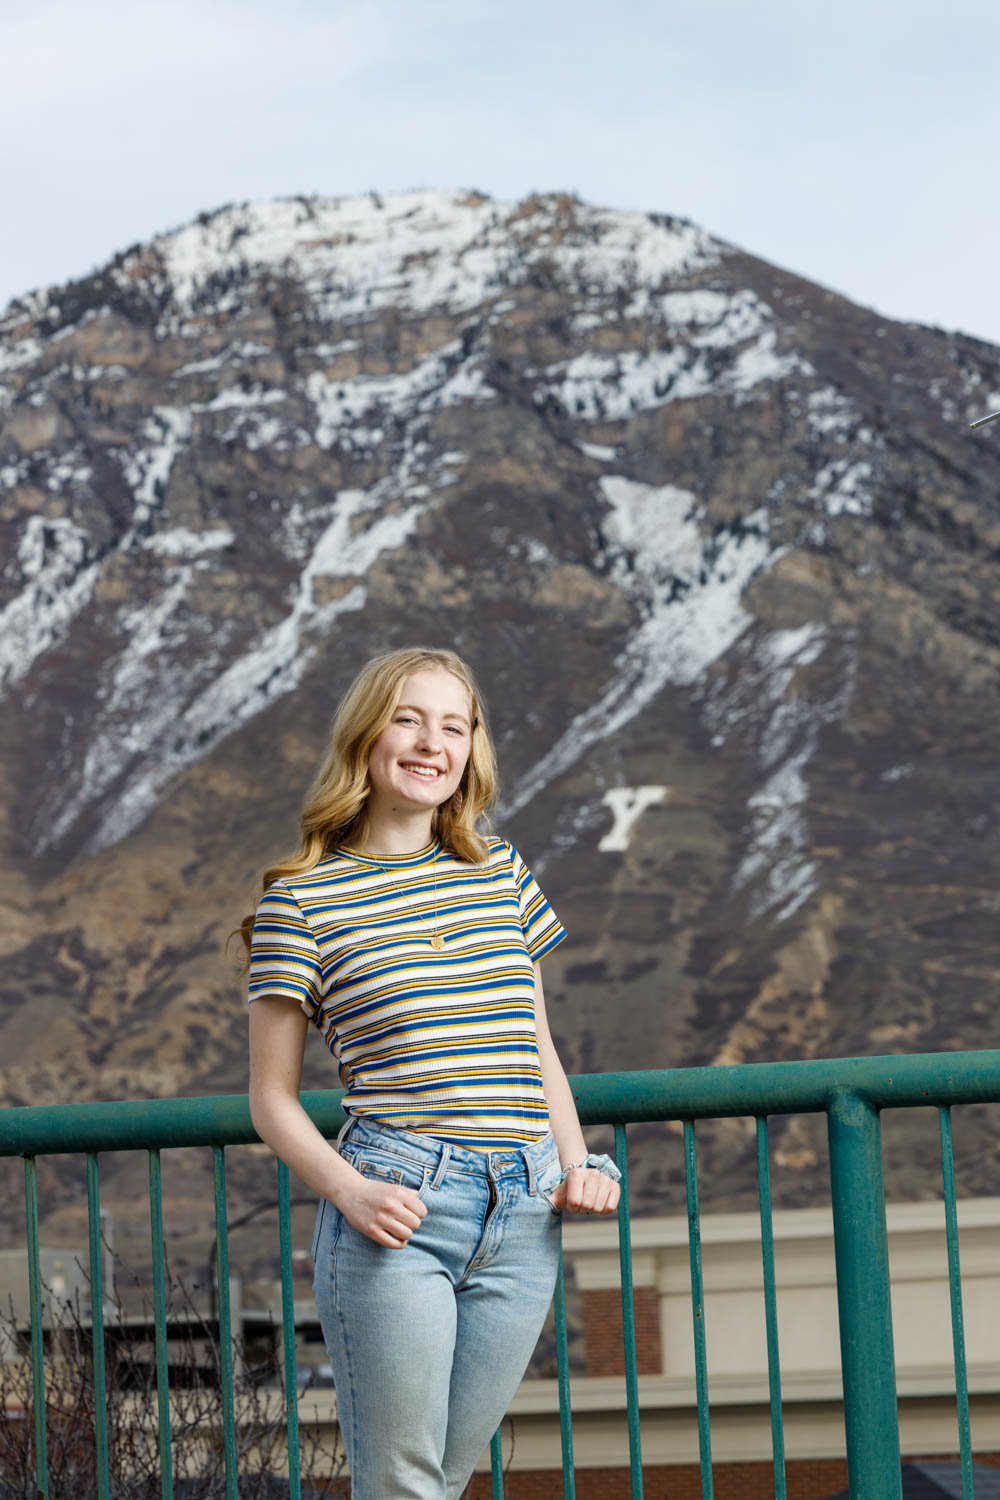 Maren will be going to BYU